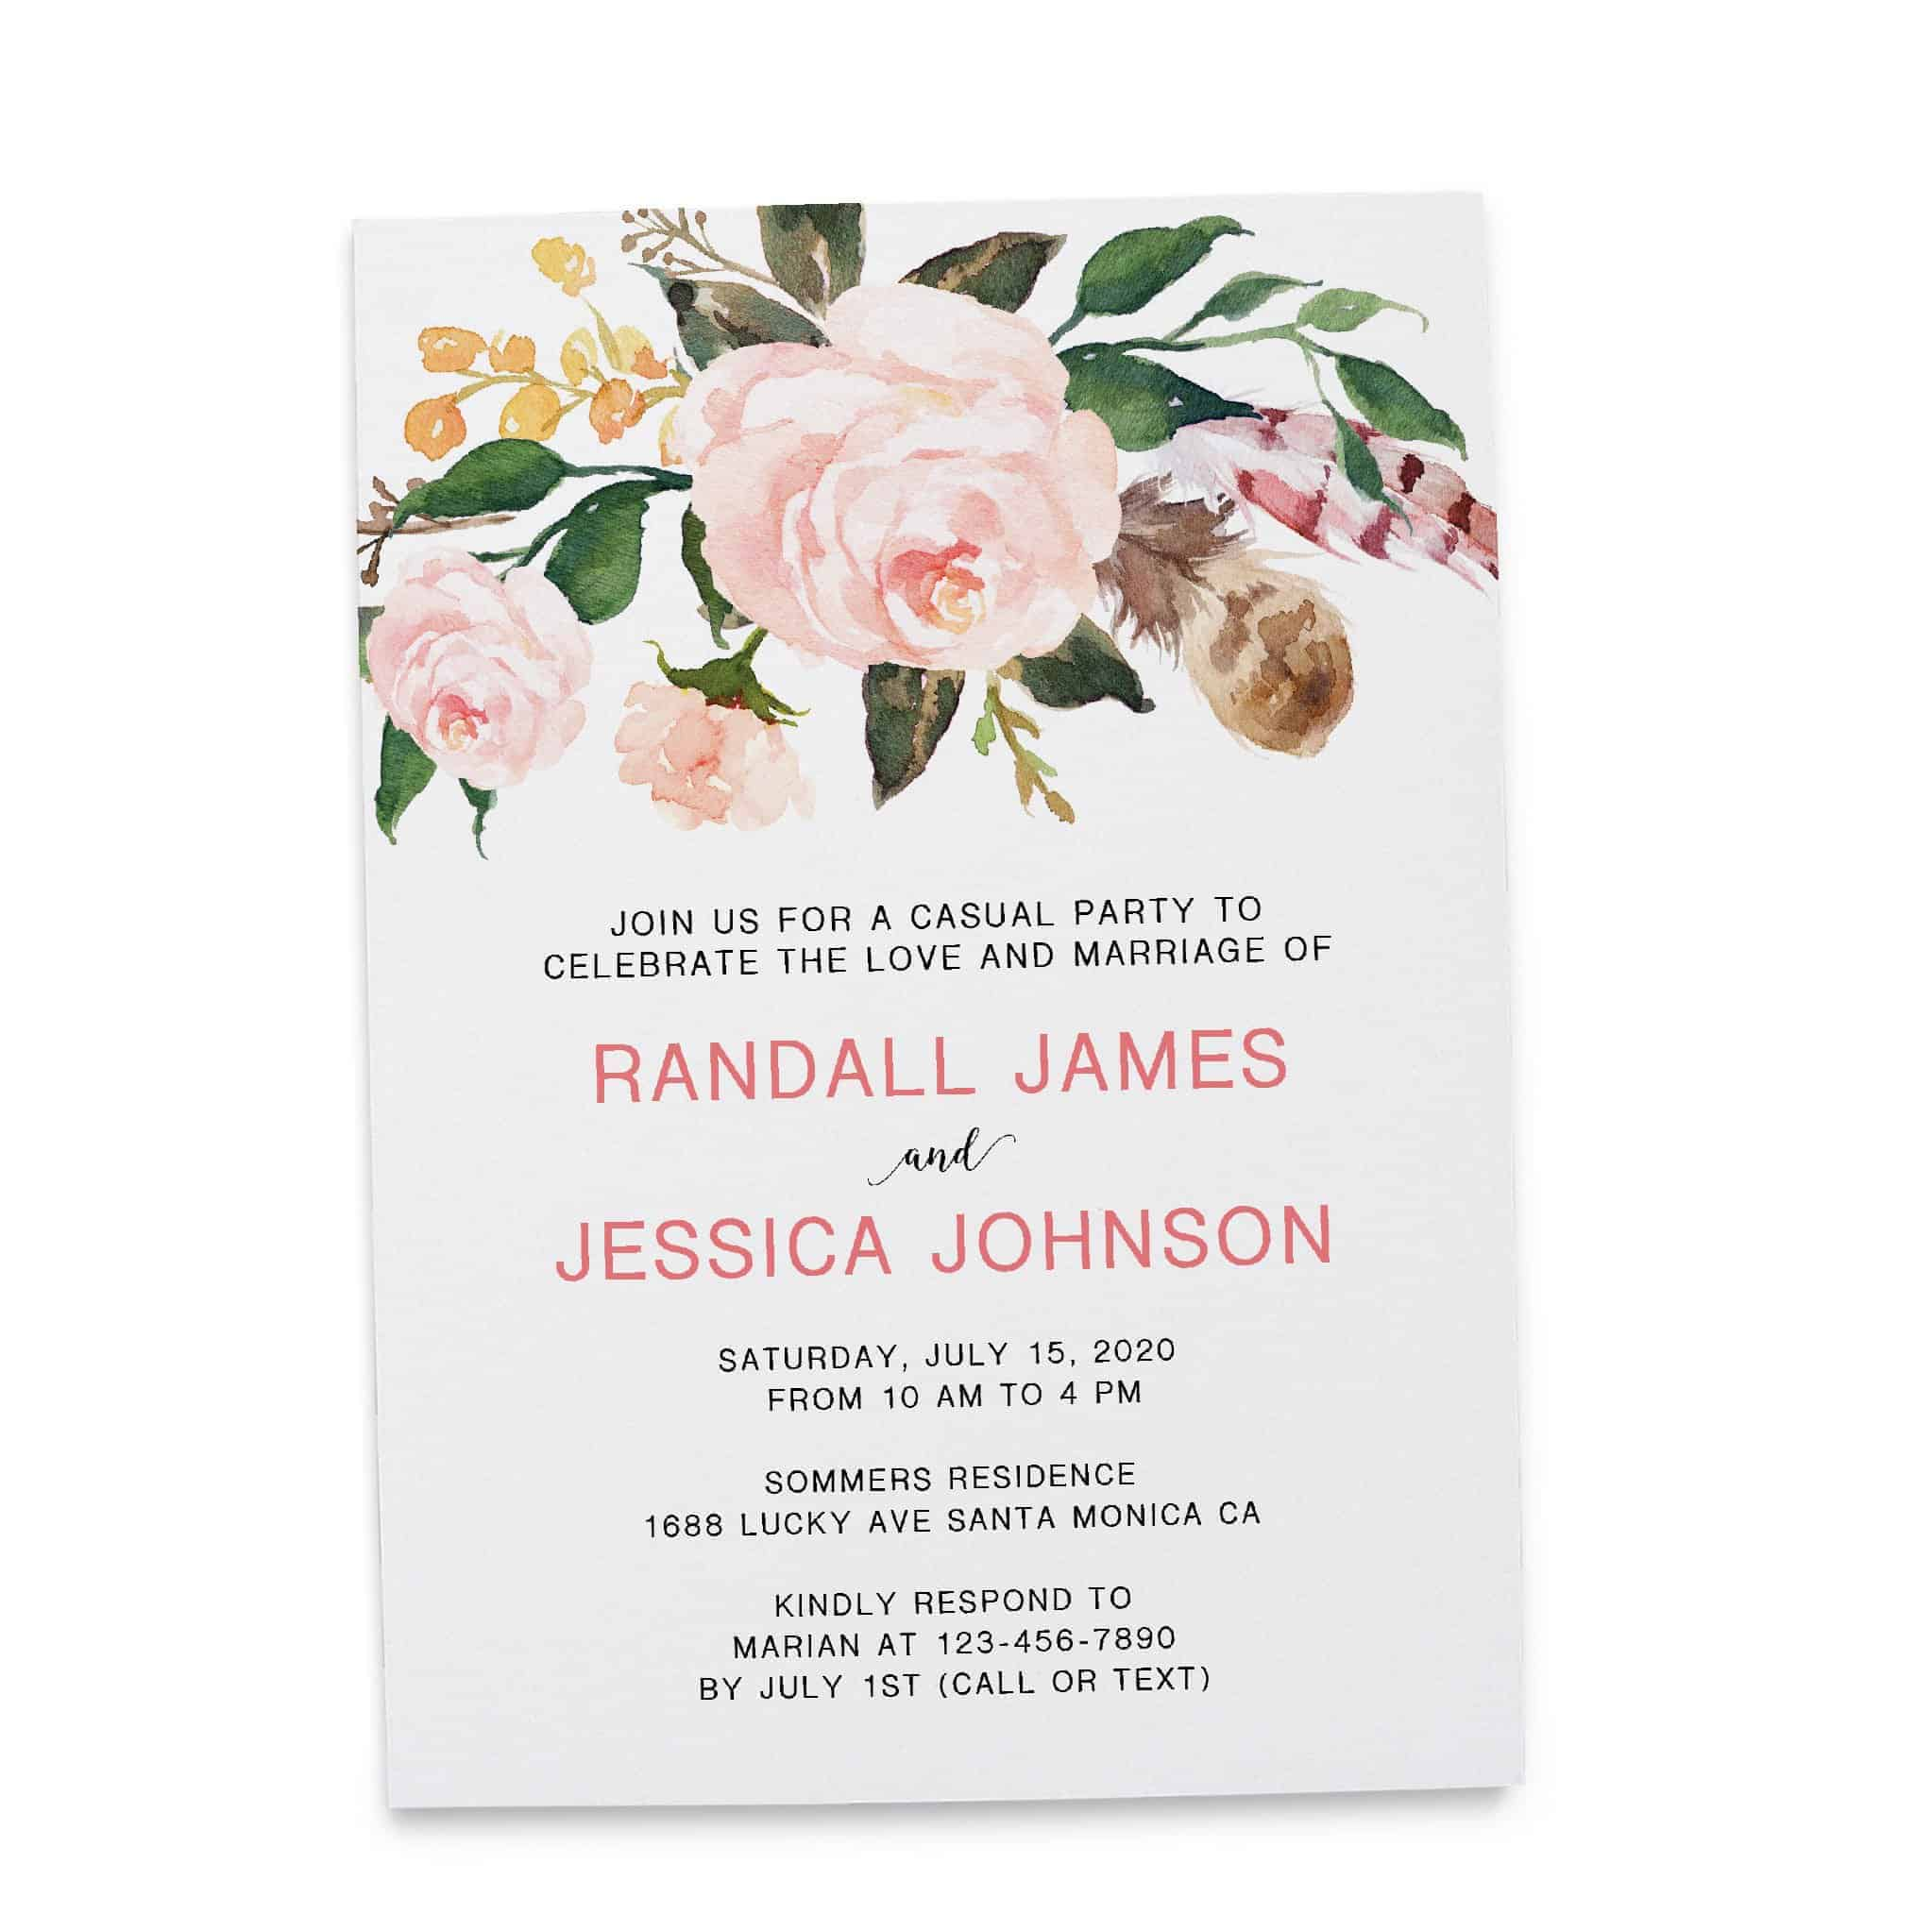 Bespoke Reception Invitation Cards, Pretty Floral Wedding  Party Invitations, Wedding Party Flat Card, Affordable Luxury